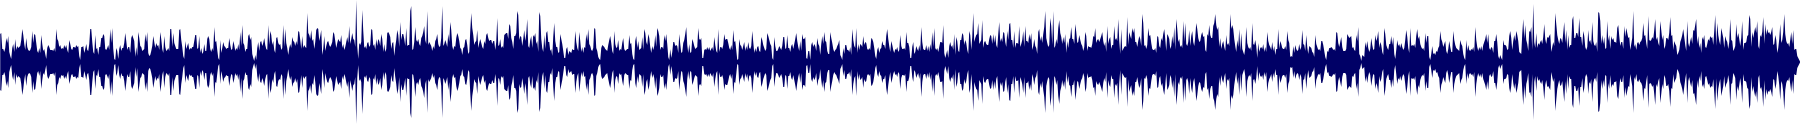 waveform of track #70763